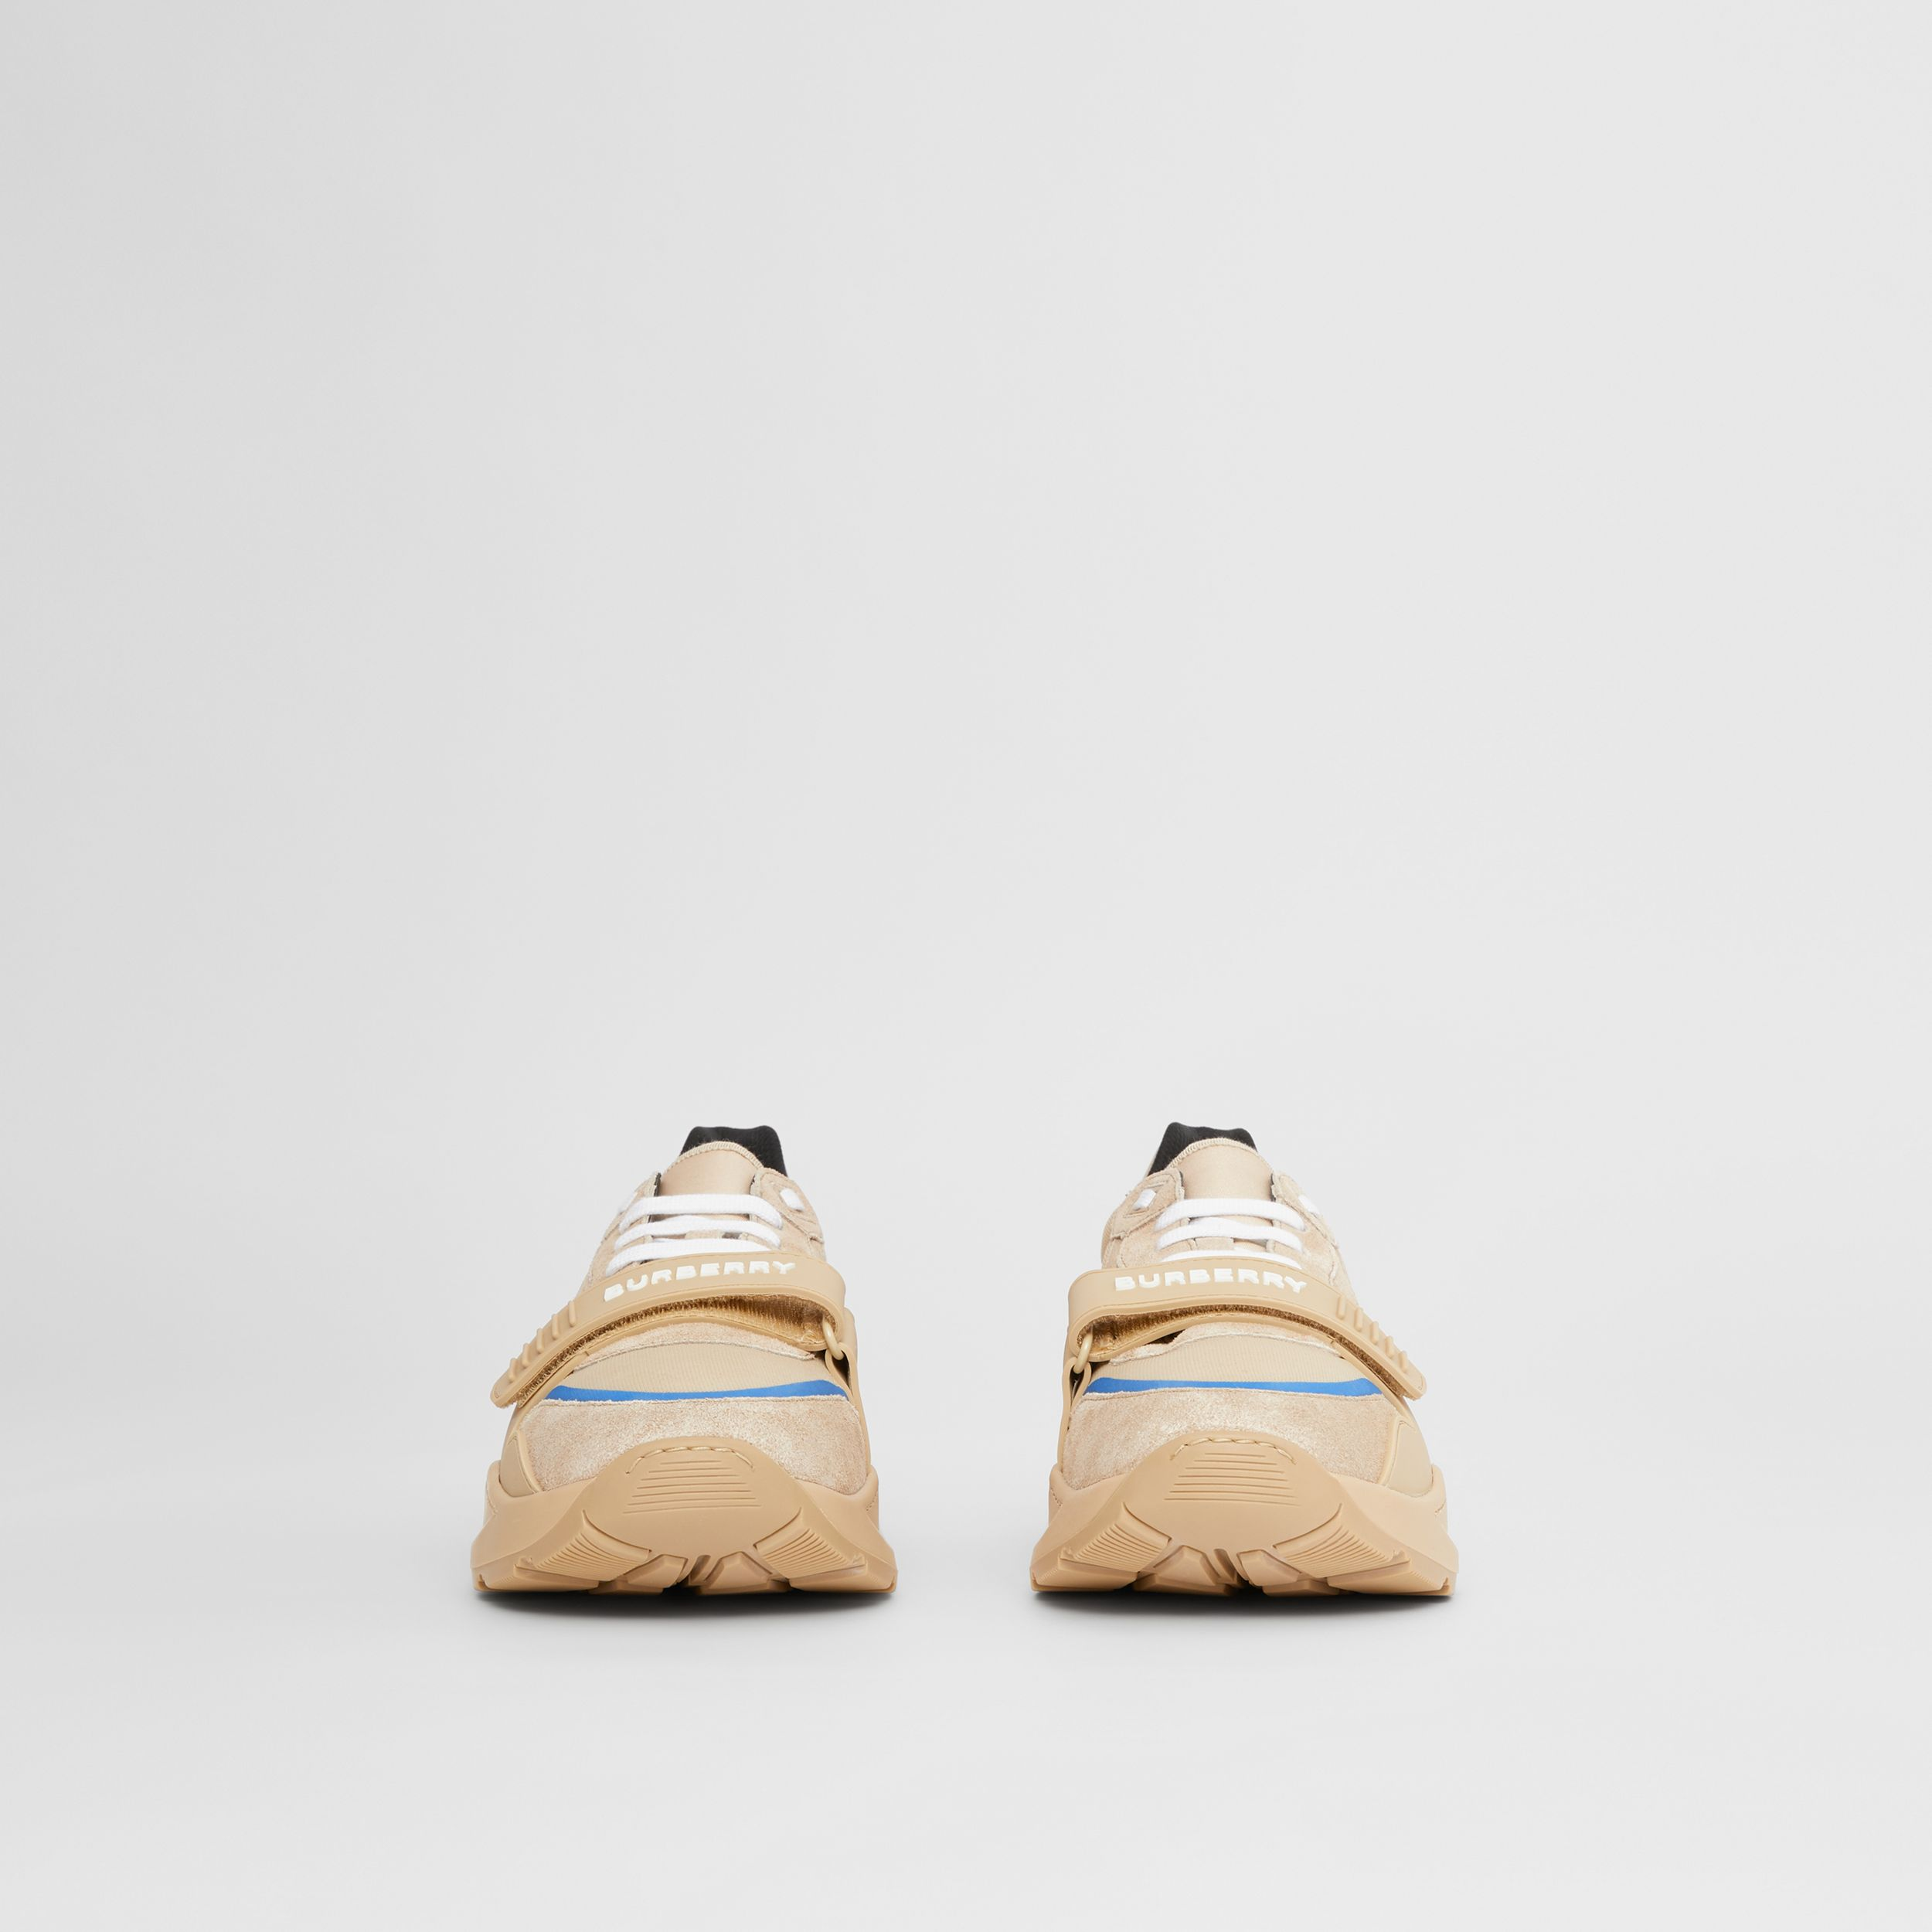 Suede, Leather and Mesh Sneakers in Beige - Men | Burberry - 4